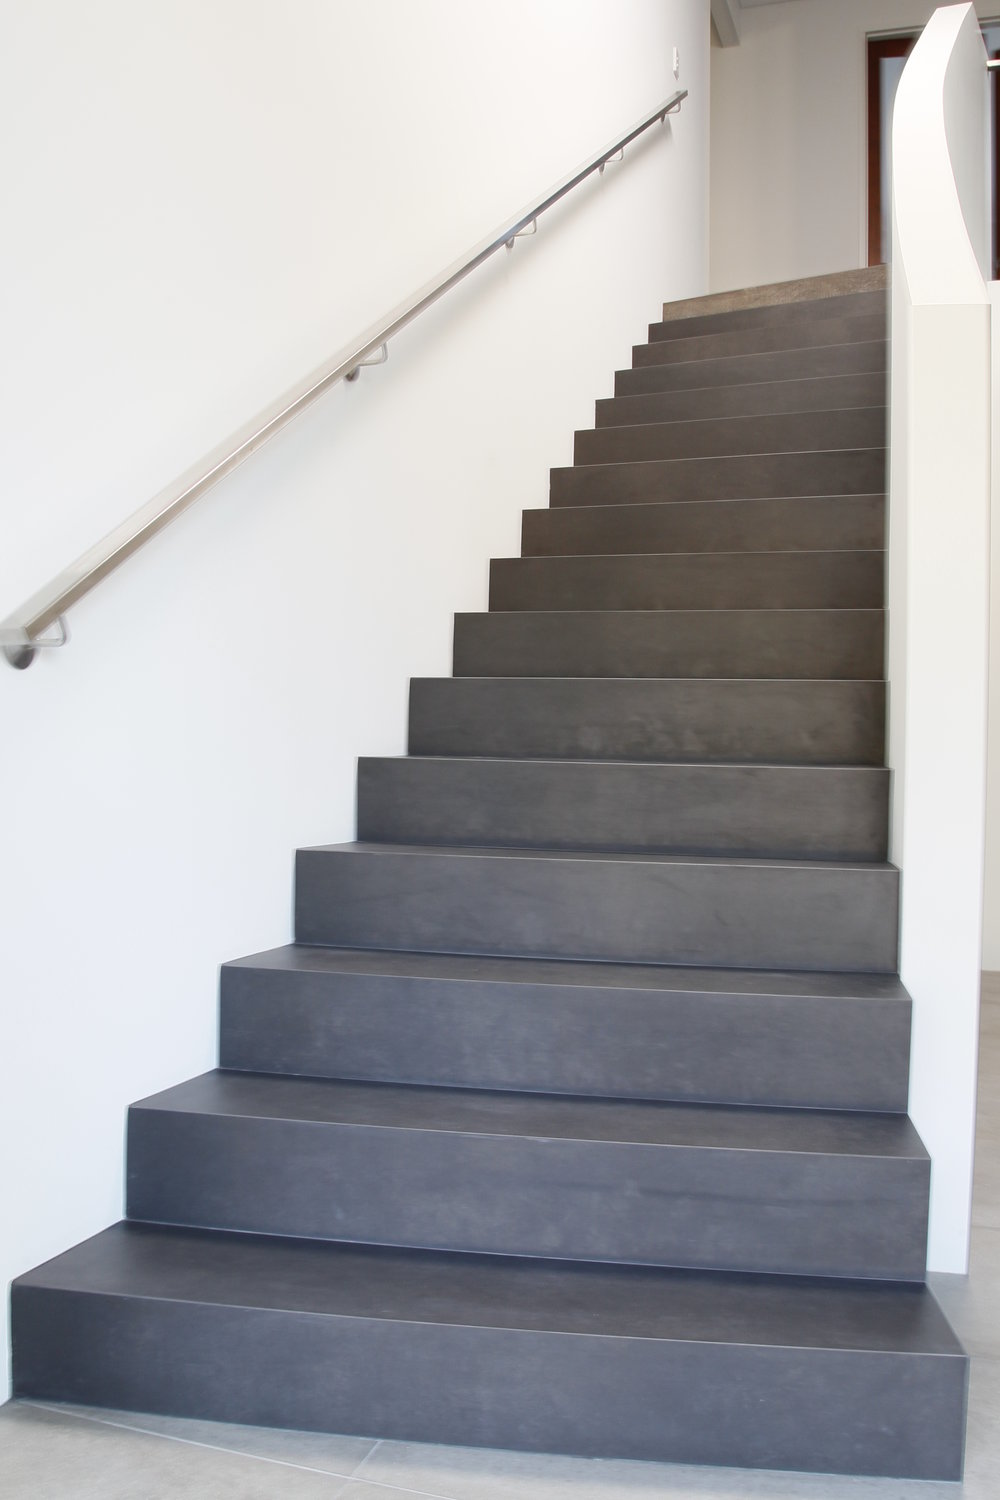 Want your stairs tiled but don't want the grout lines? Look no further!